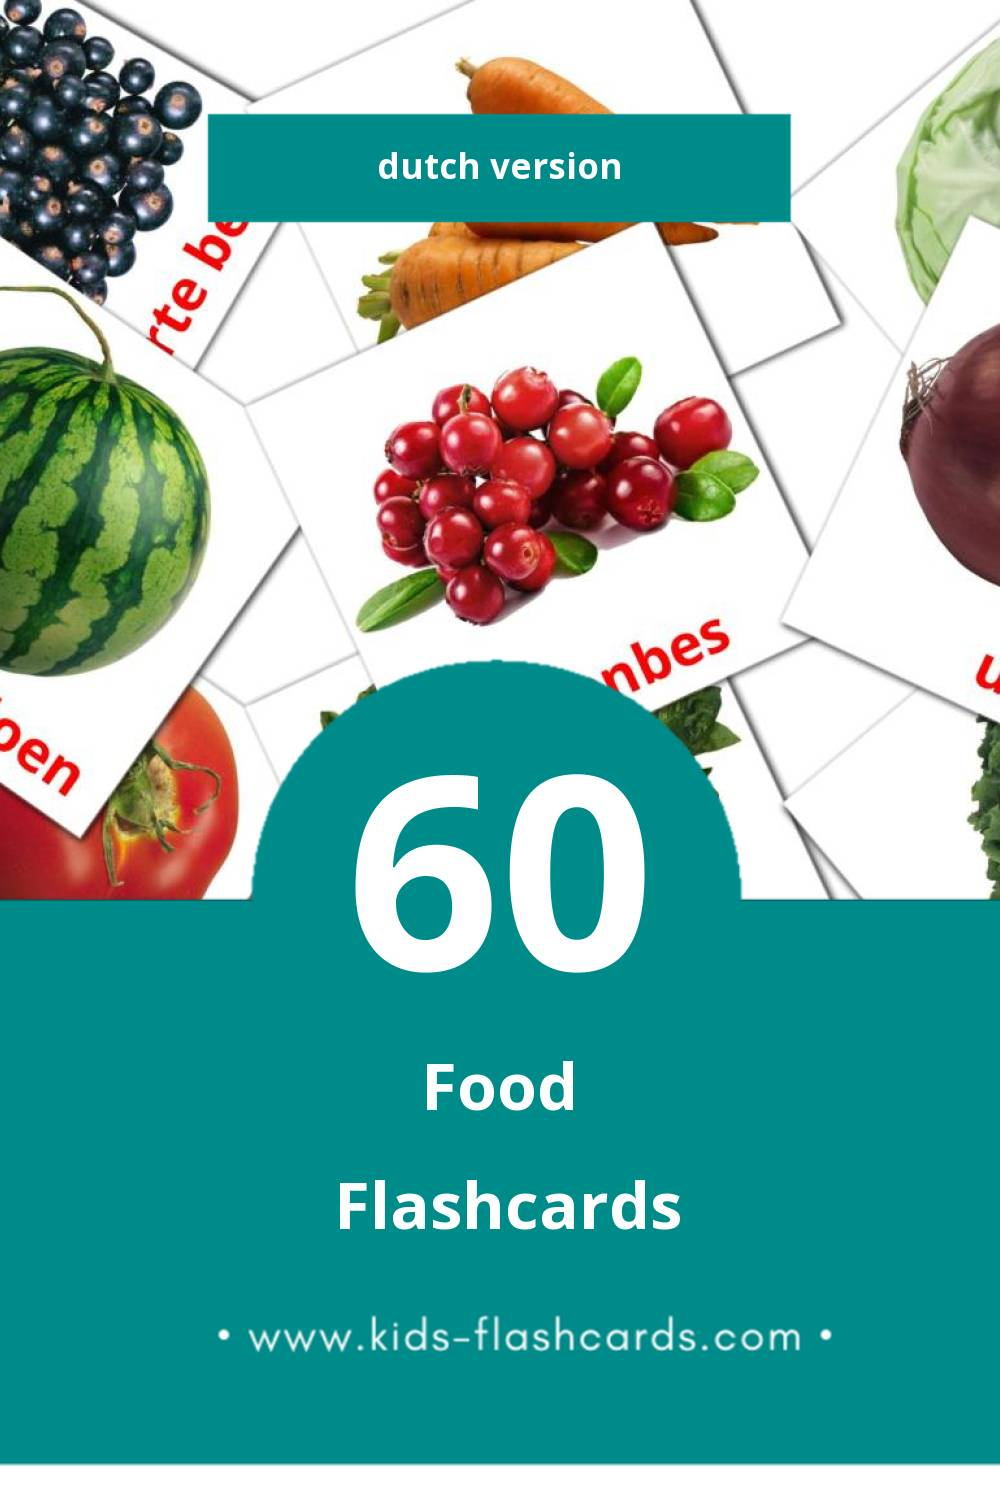 Visual Eten Flashcards for Toddlers (49 cards in Dutch)